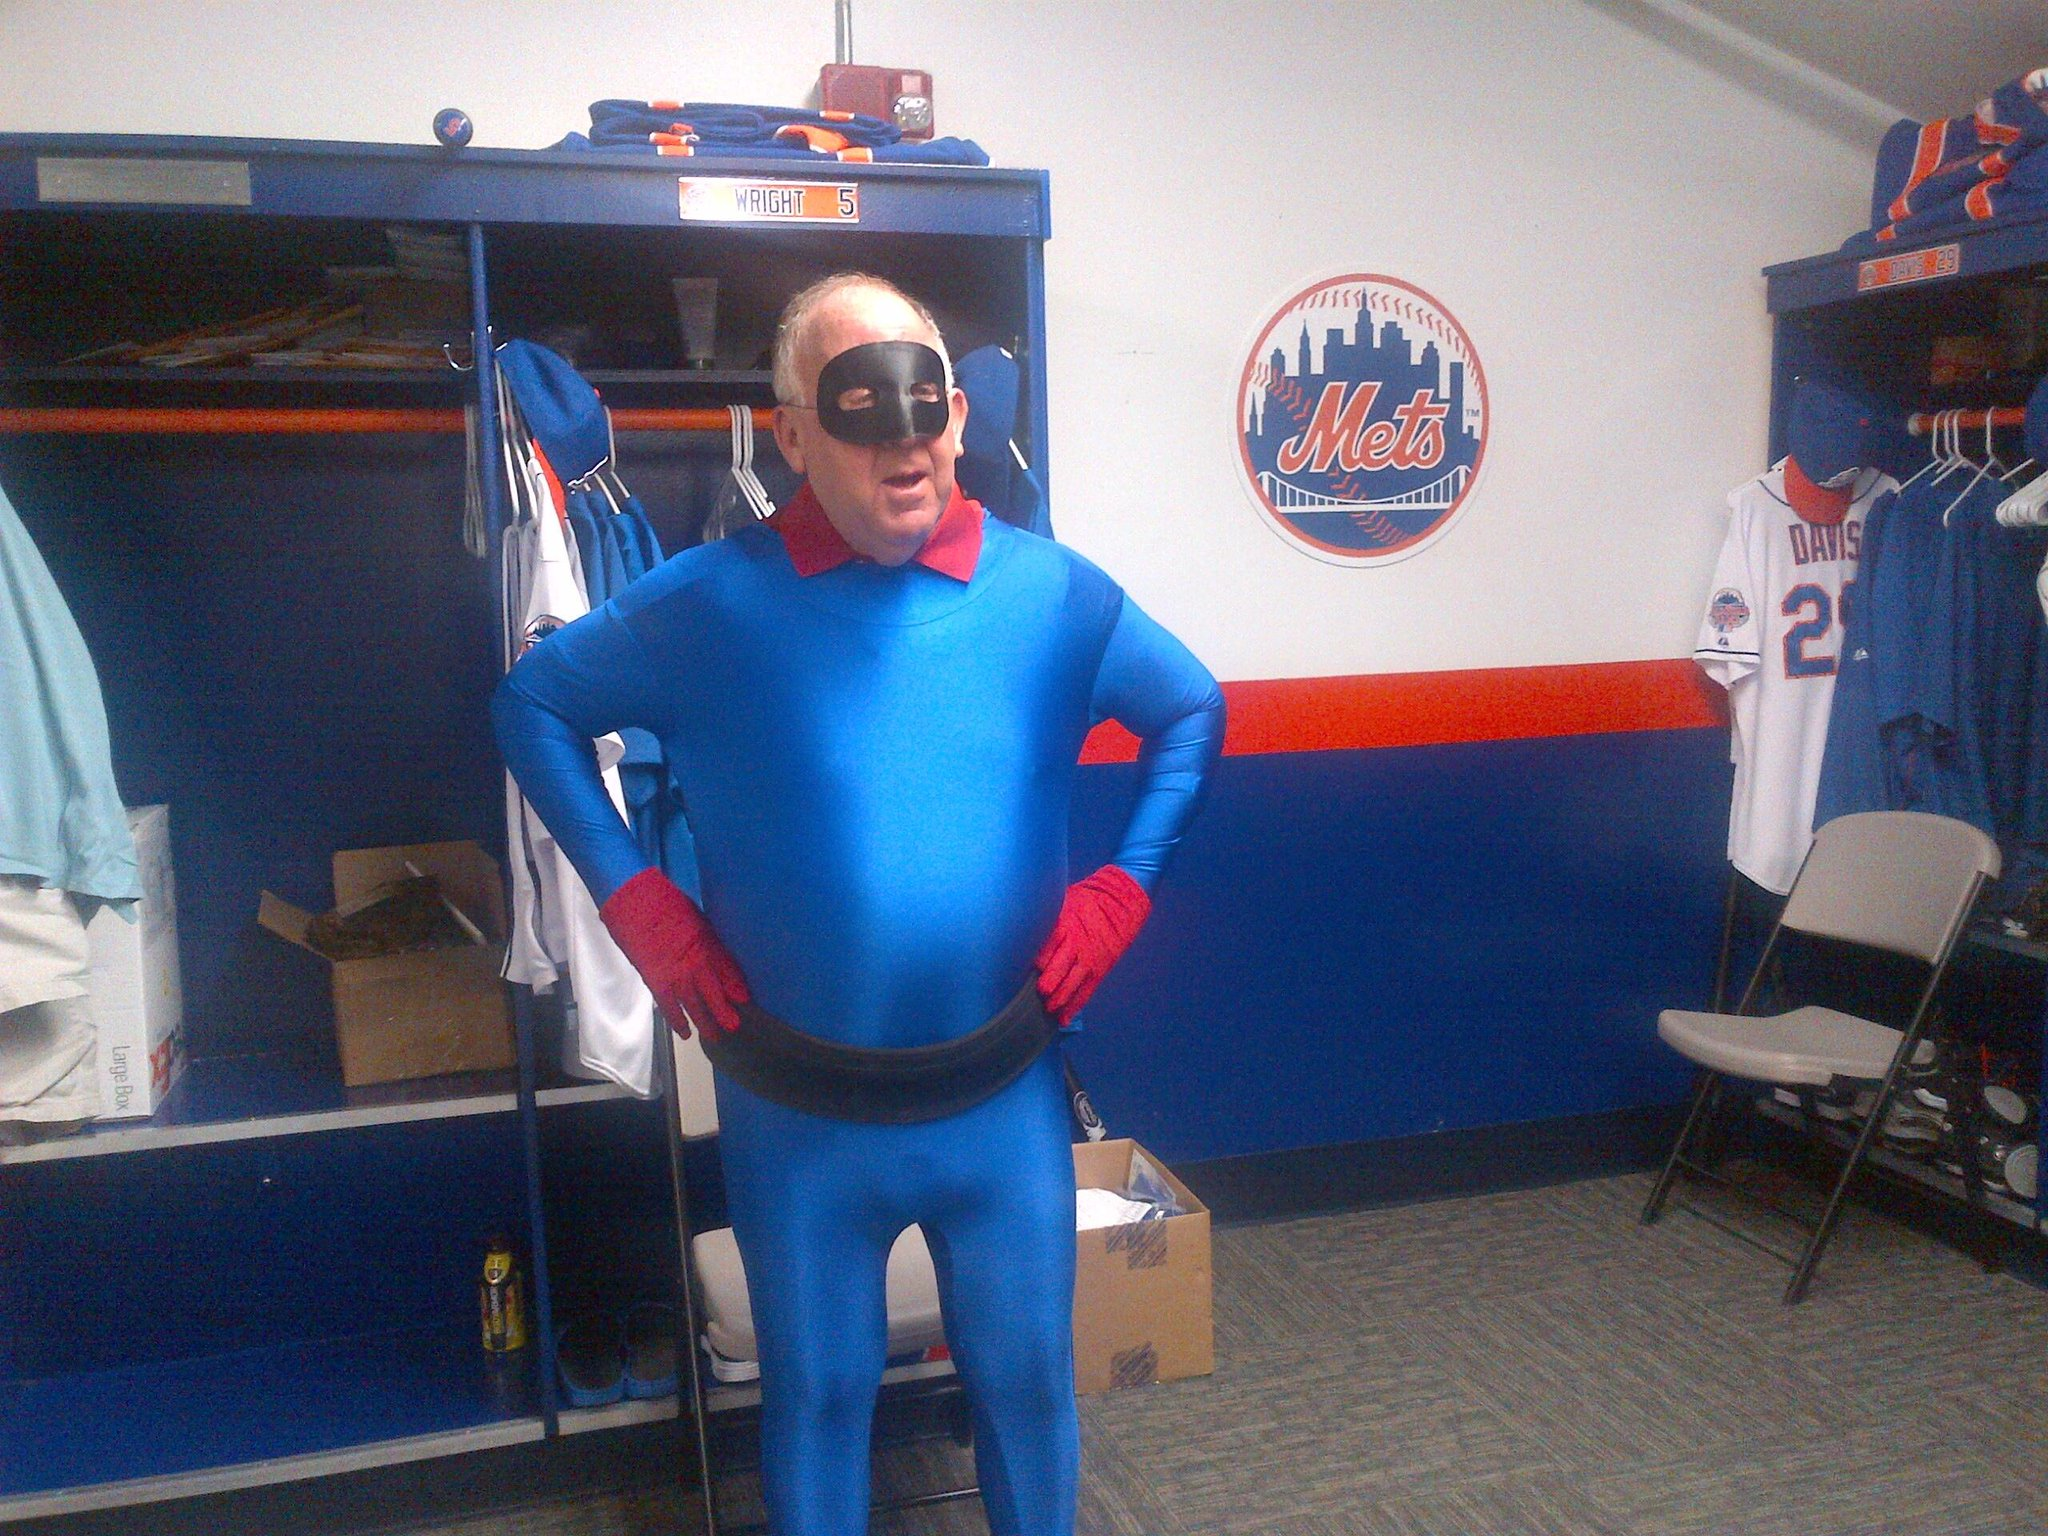 Mets PR man dresses as Captain America sidekick Bucky as tribute to David Wright (Photo)